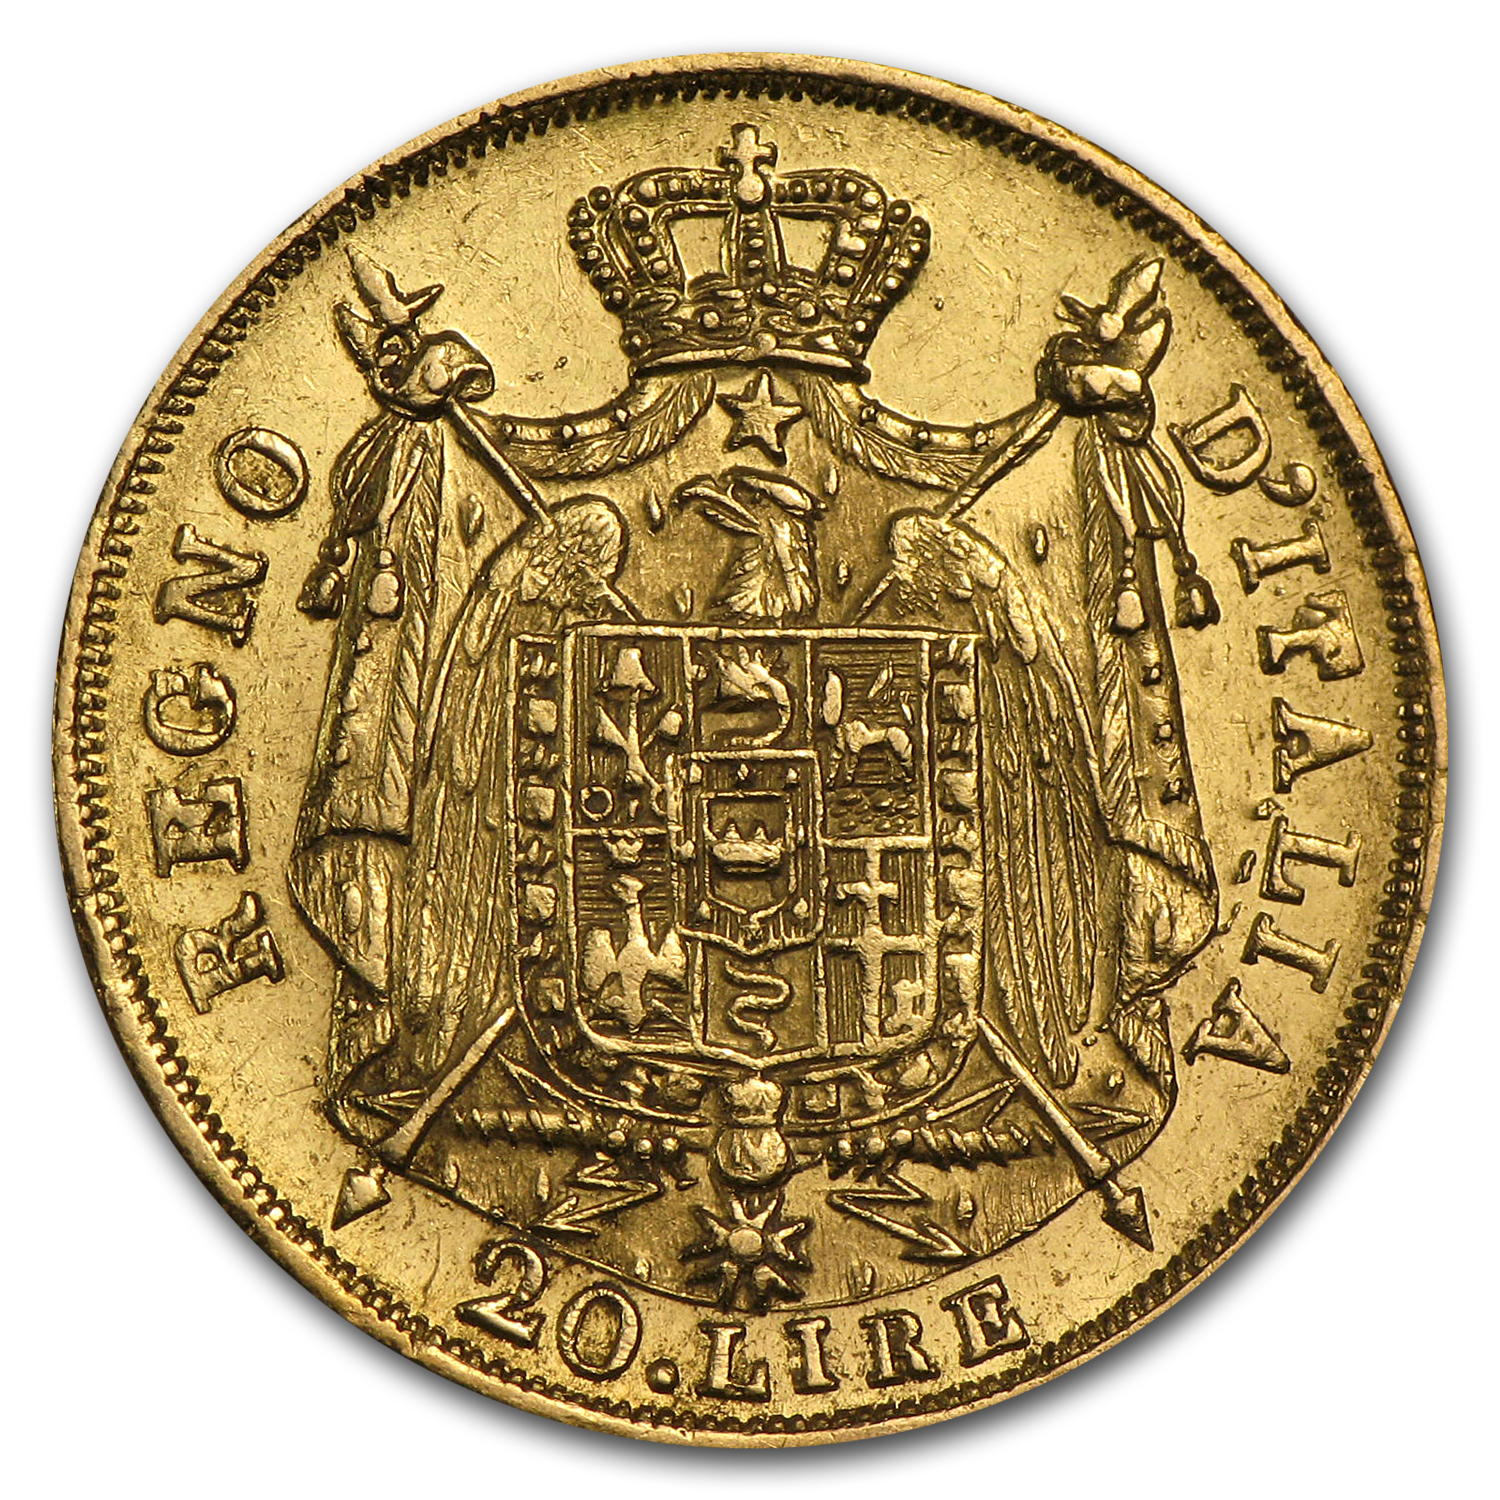 1808-1814 Kingdom of Italy Gold 20 Lire Napoleon I Avg Circ